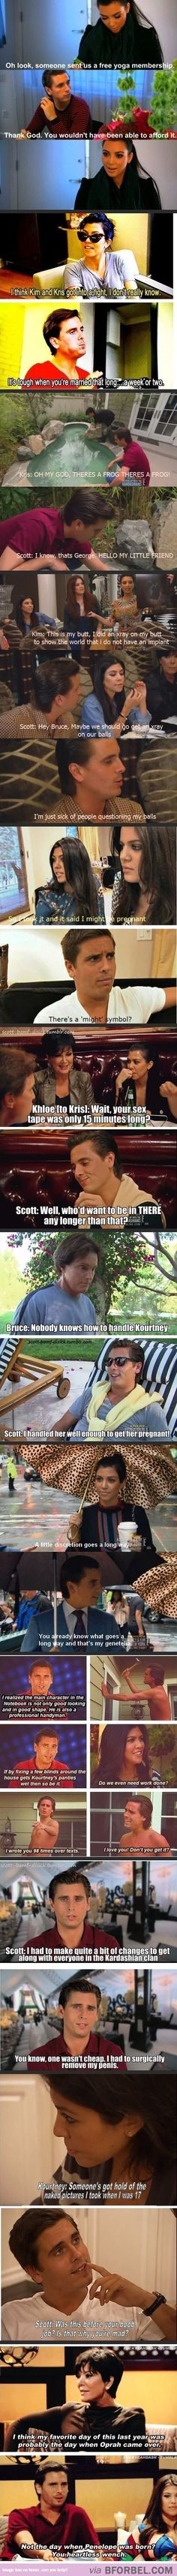 Why Lord Disick Is The Best Of The Bunch…